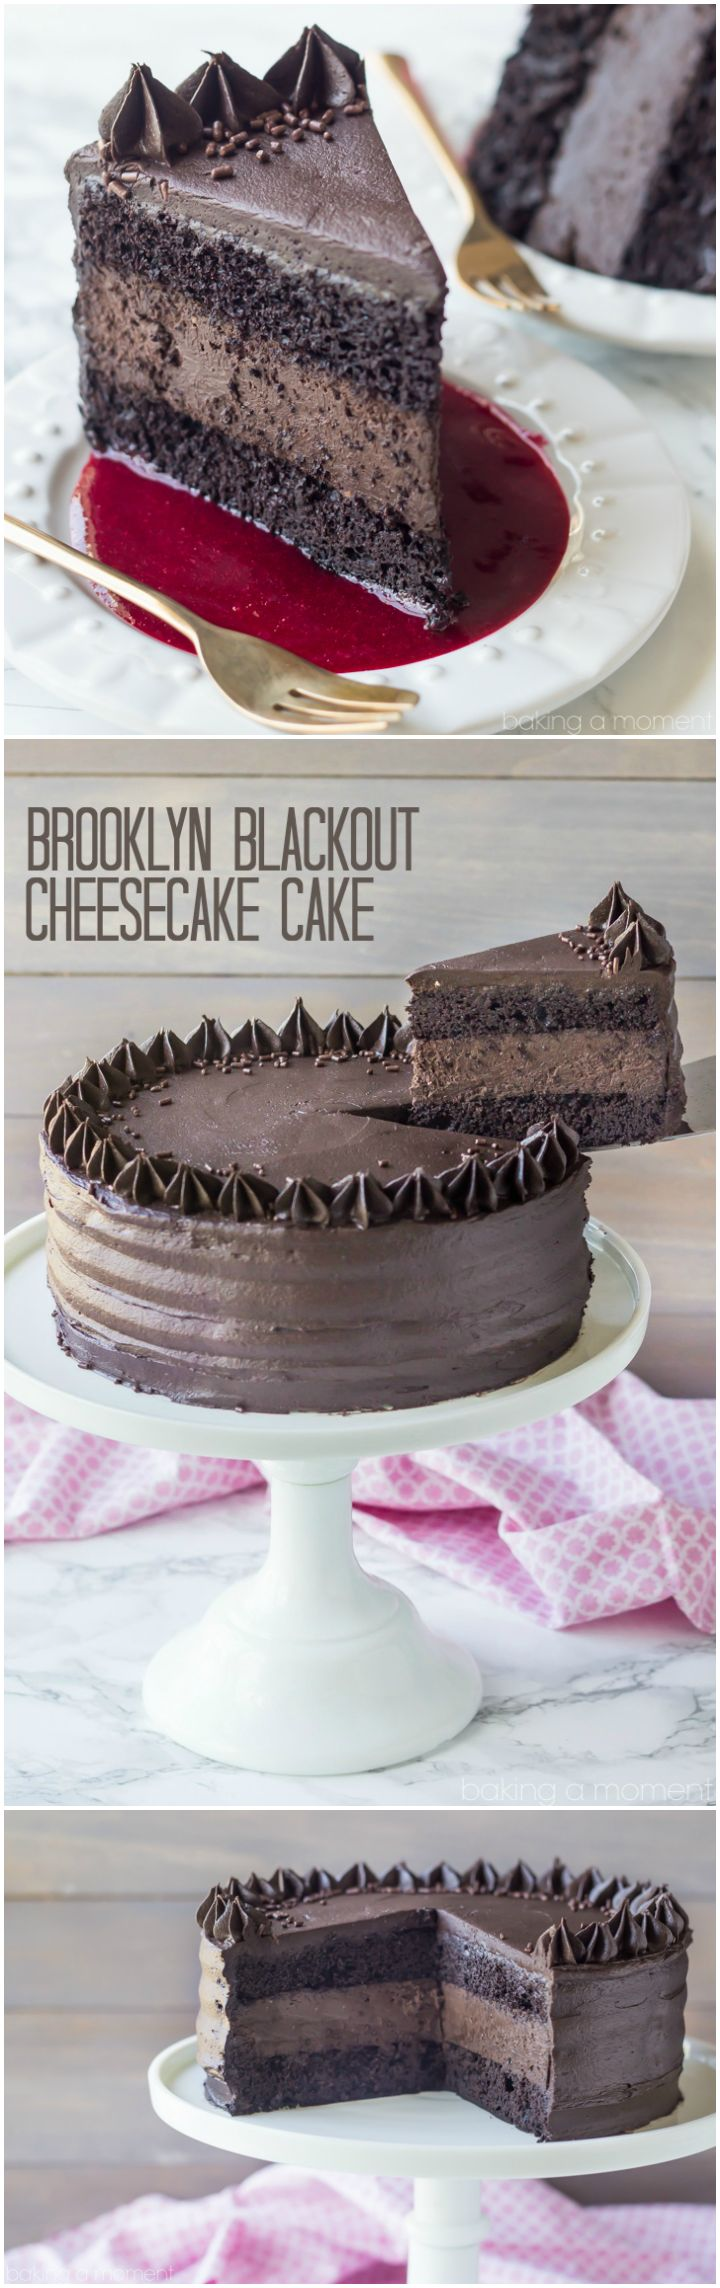 Brooklyn Blackout Cheesecake Cake   Baking a Moment.  Can be THM friendly by just changing the sweetener.